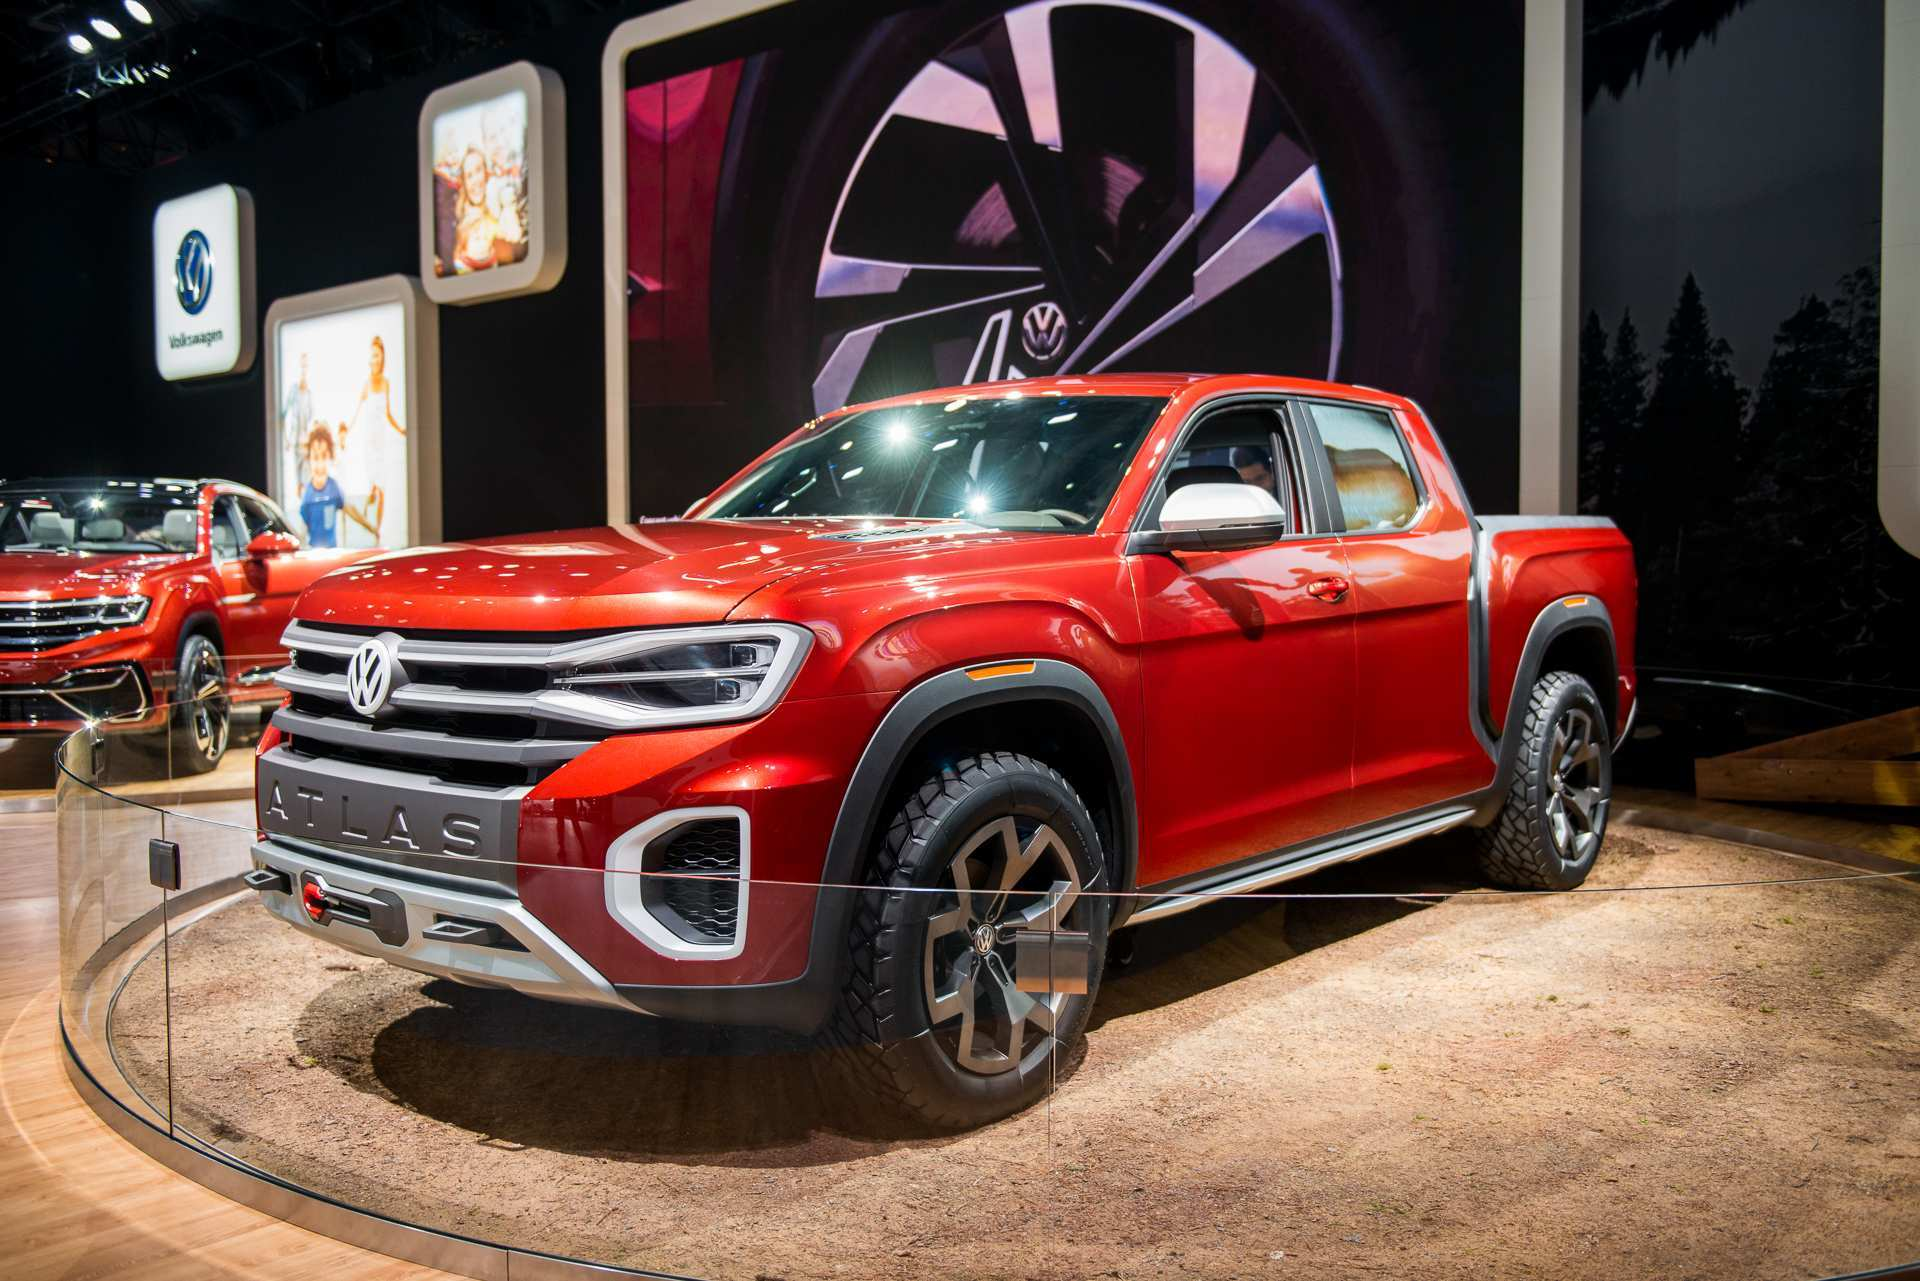 56 Concept of 2020 Volkswagen Truck Images with 2020 Volkswagen Truck